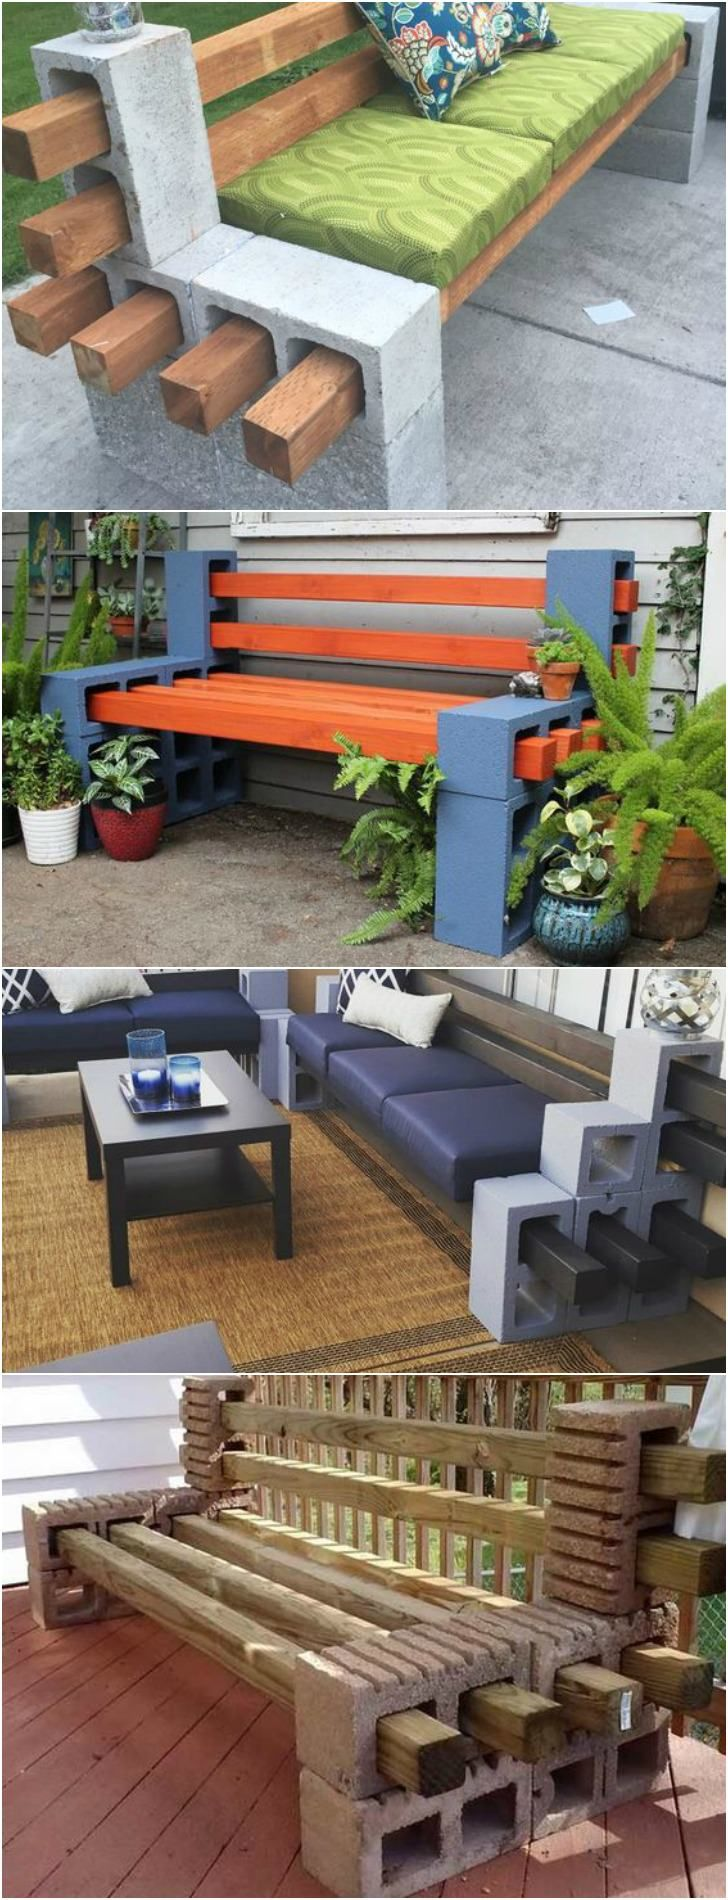 Garden Furniture Design Ideas 25+ best diy outdoor furniture ideas on pinterest | outdoor